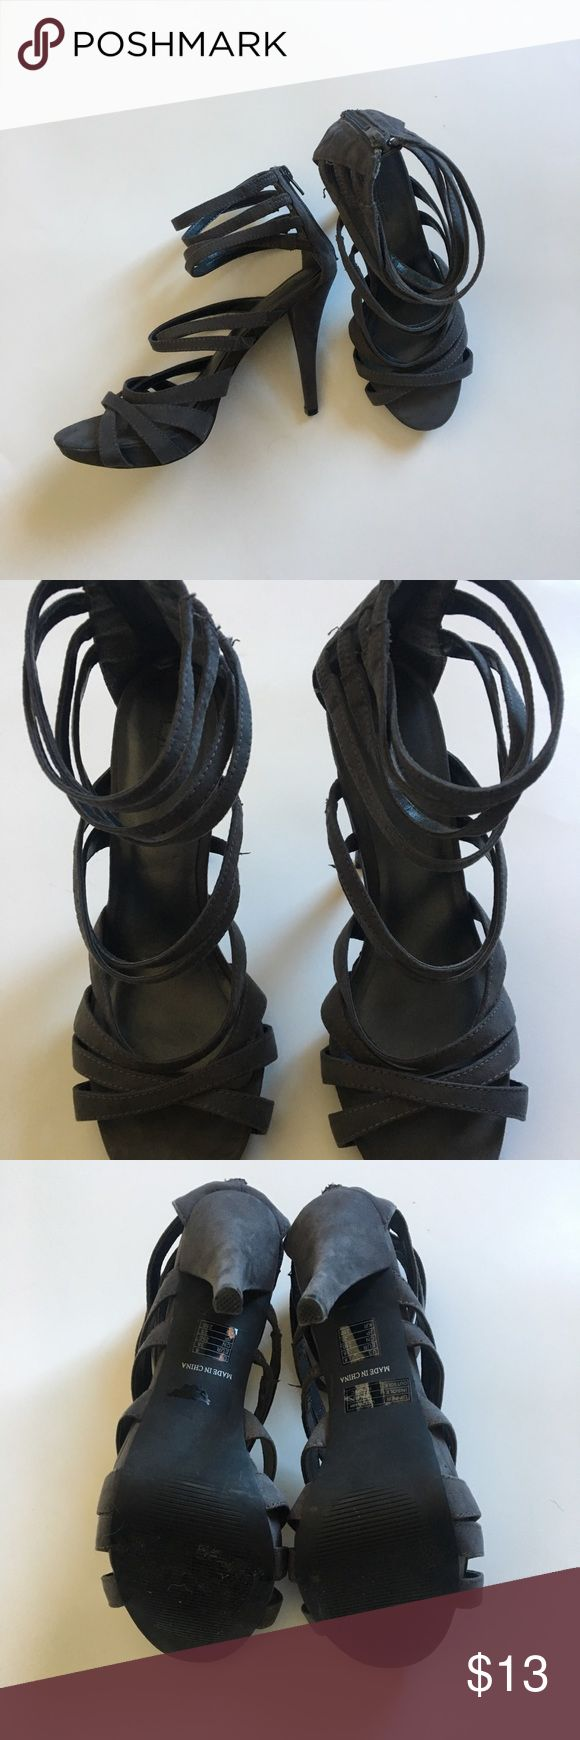 Gray strap up heels Great condition, gray strap up heels that zip at the ankle Forever 21 Shoes Heels